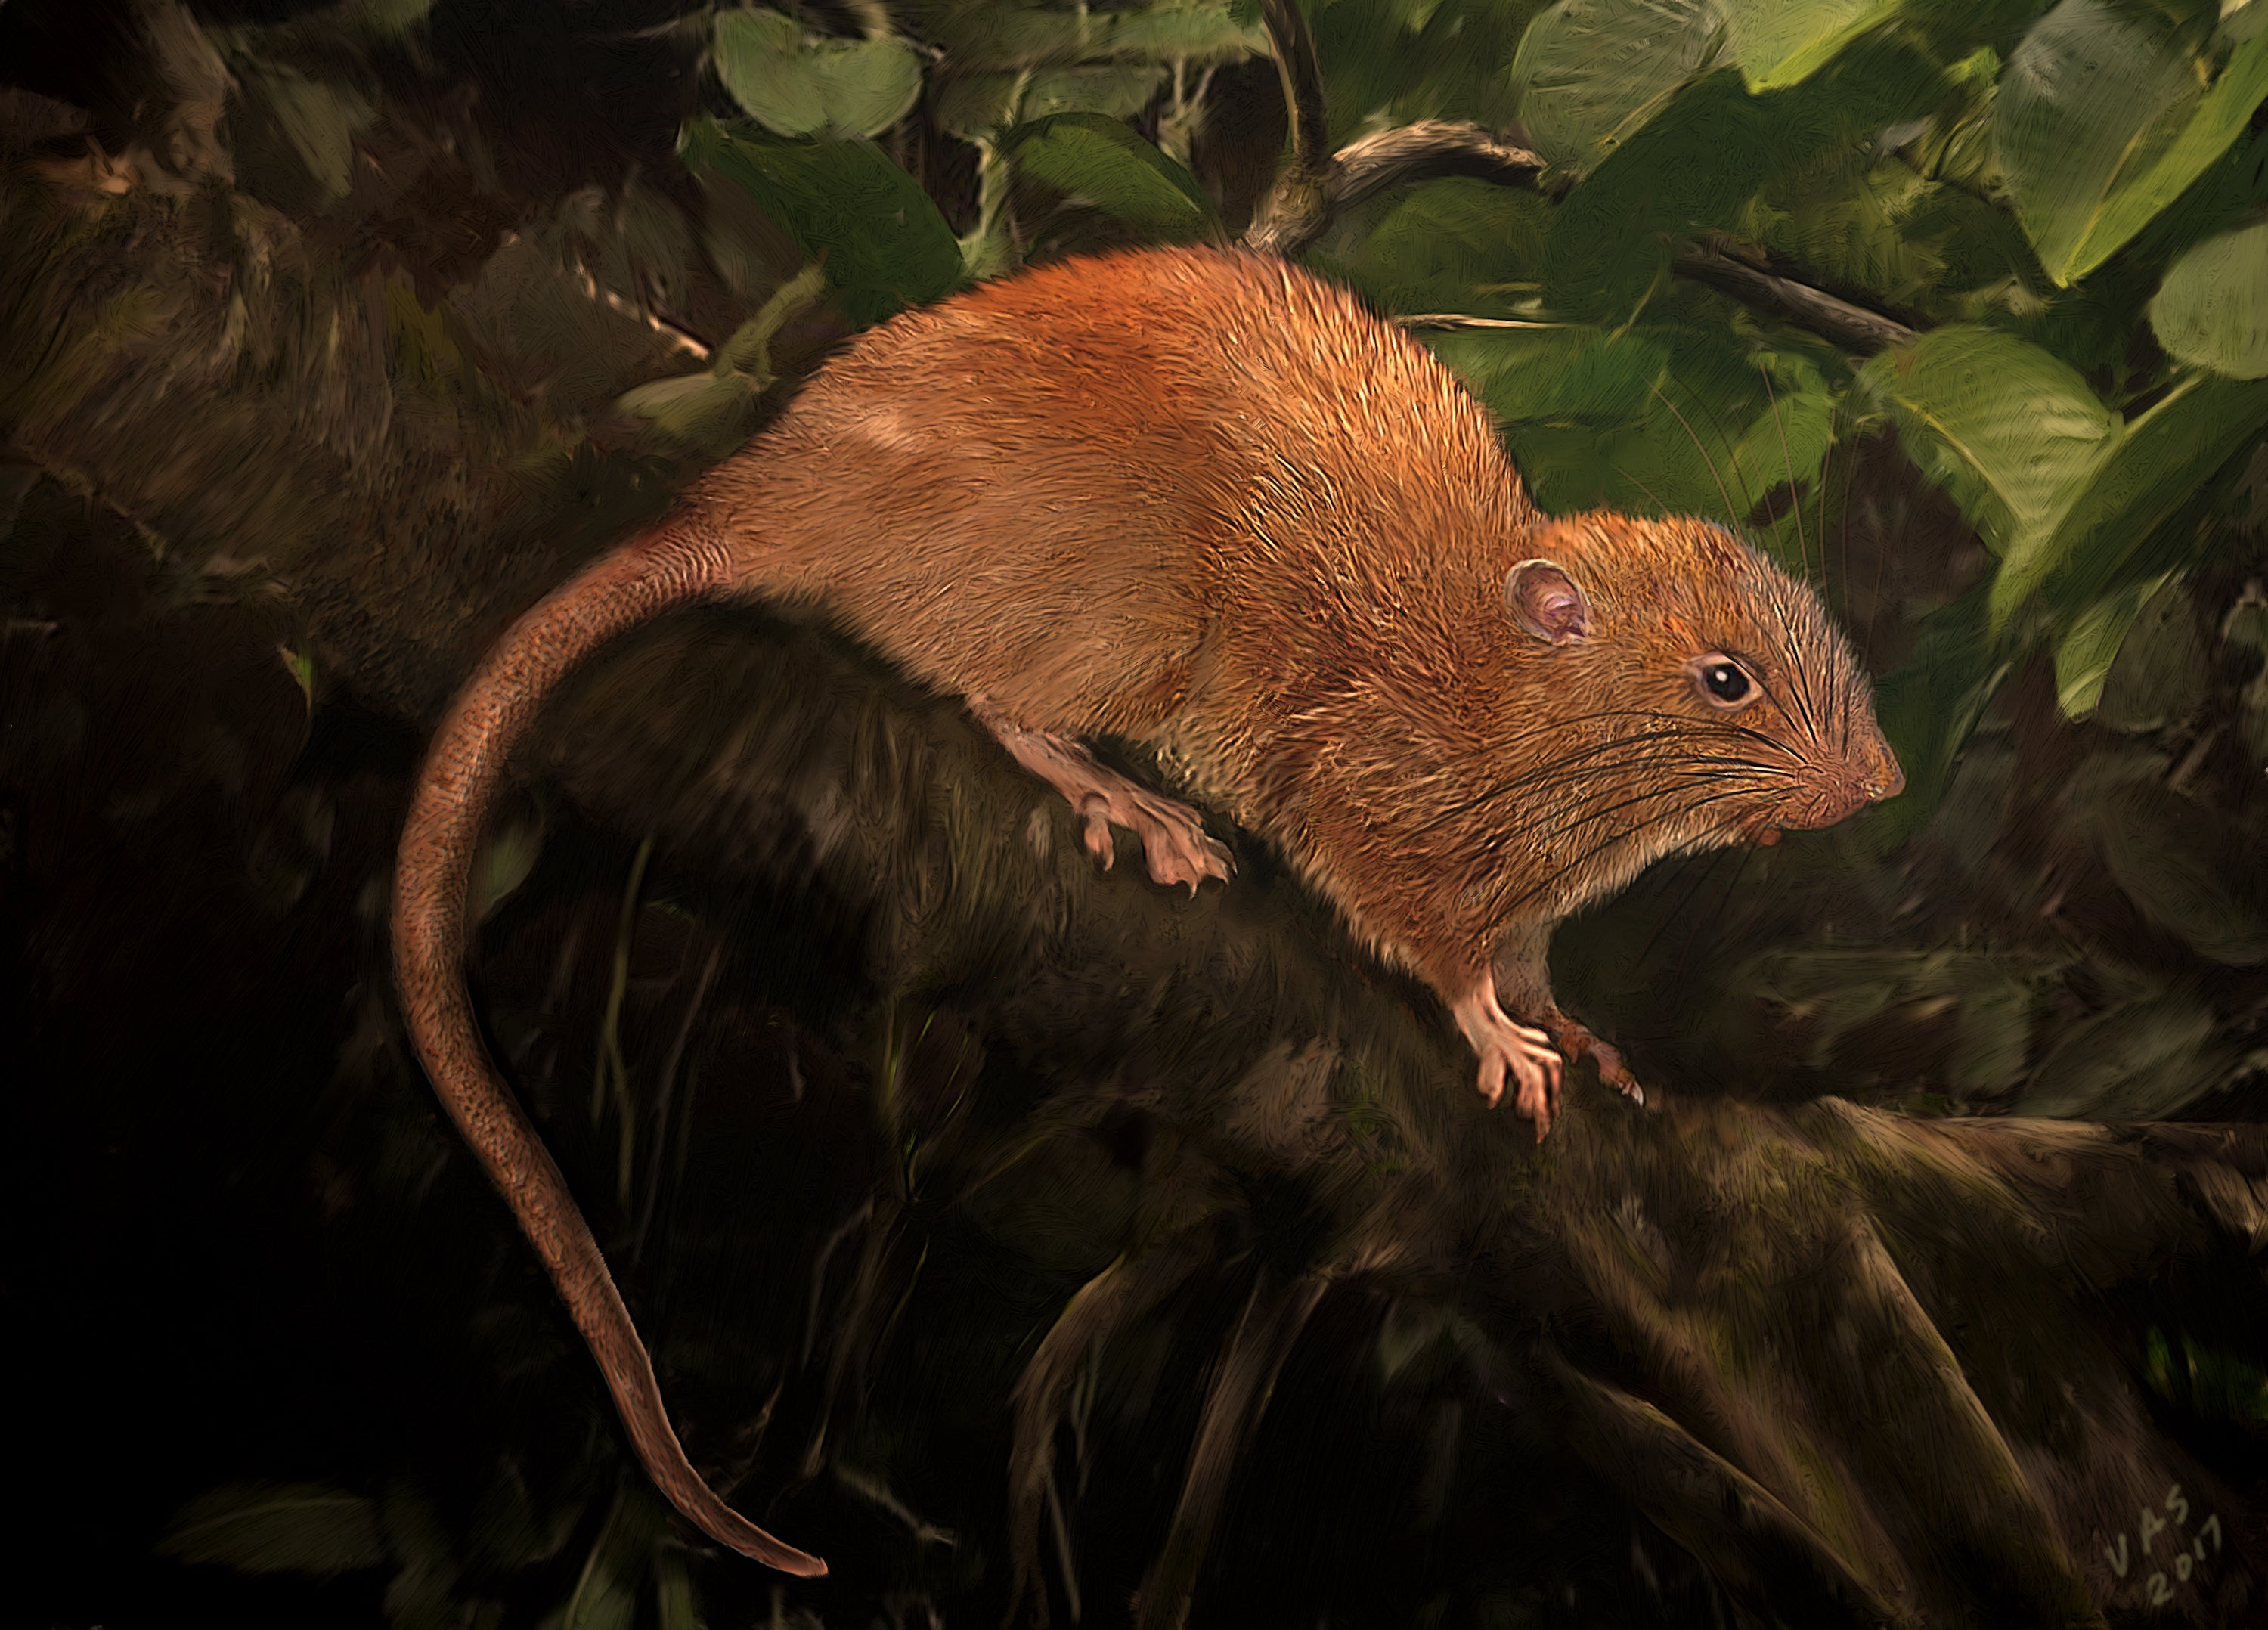 Giant Tree-Dwelling, Coconut-Eating Rat Species Discovered - Scientific  American